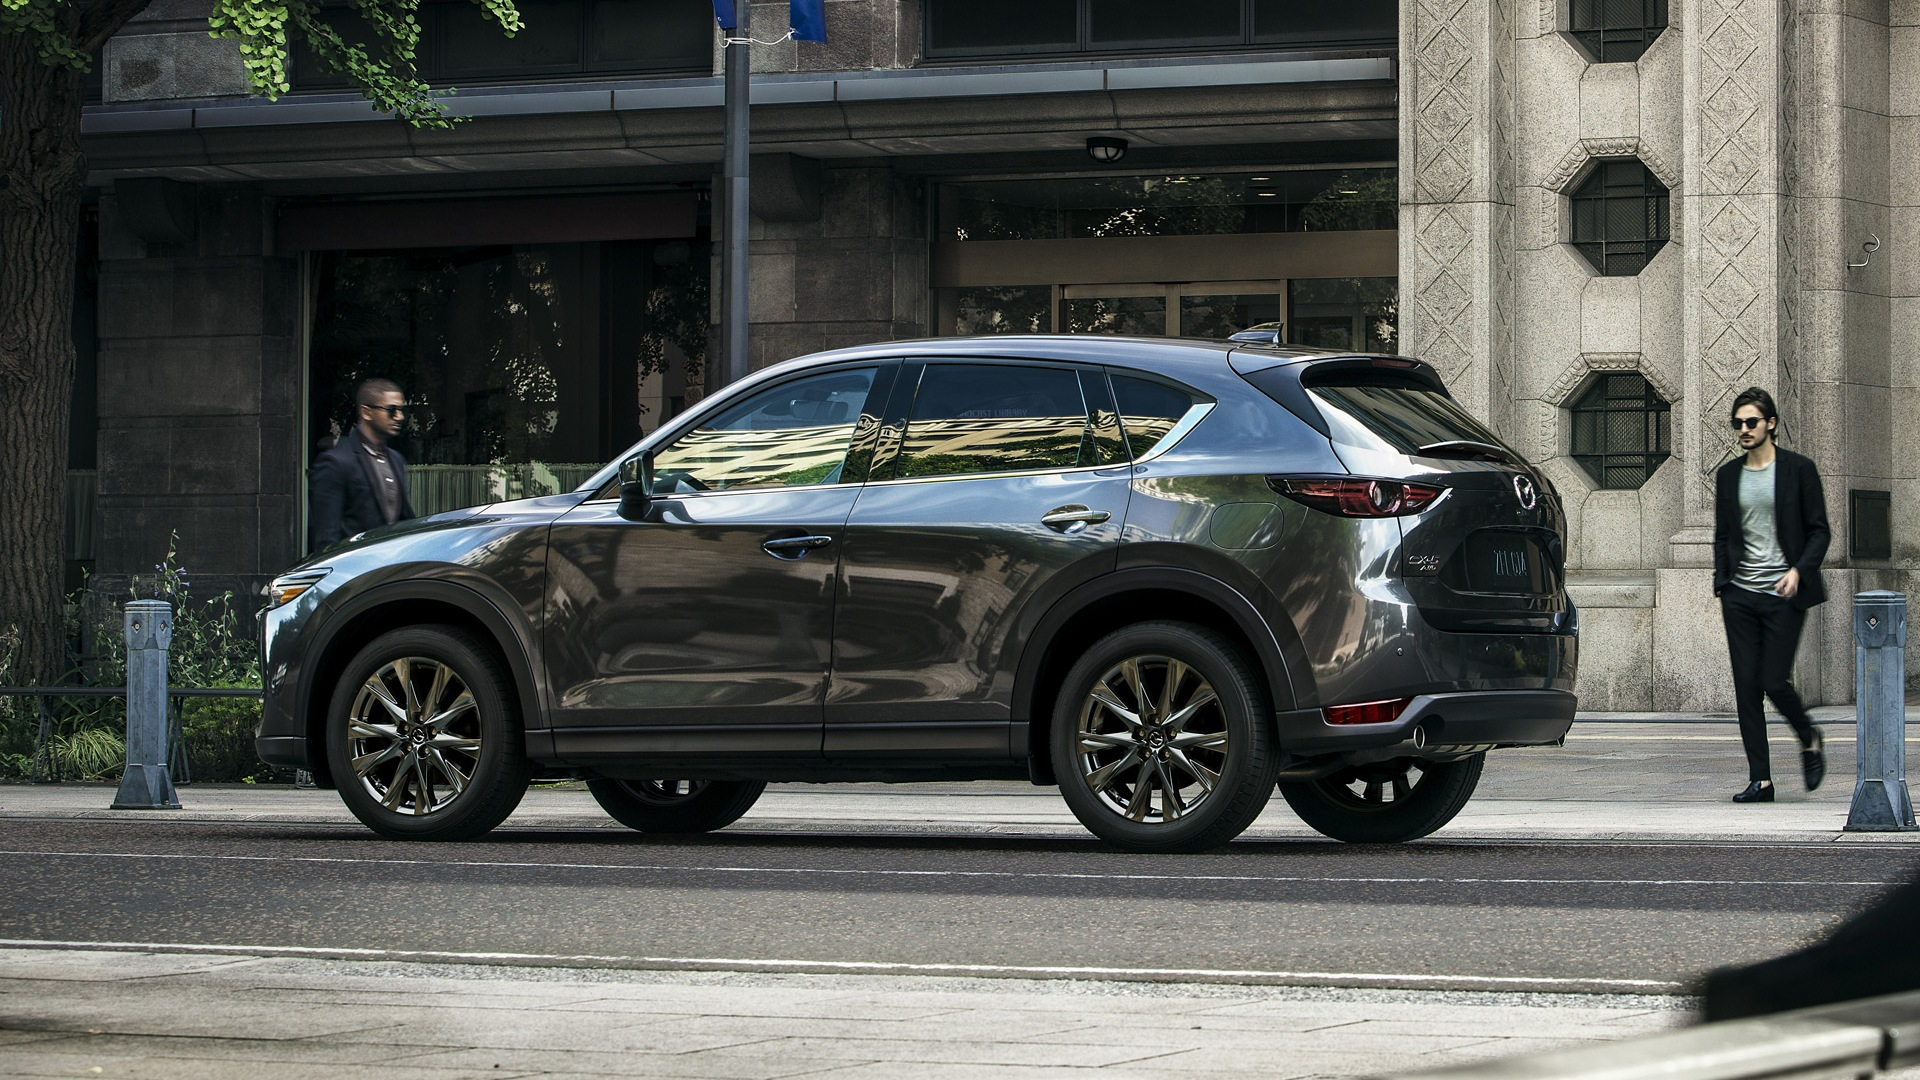 79 The Best 2020 Mazda CX 5 Overview